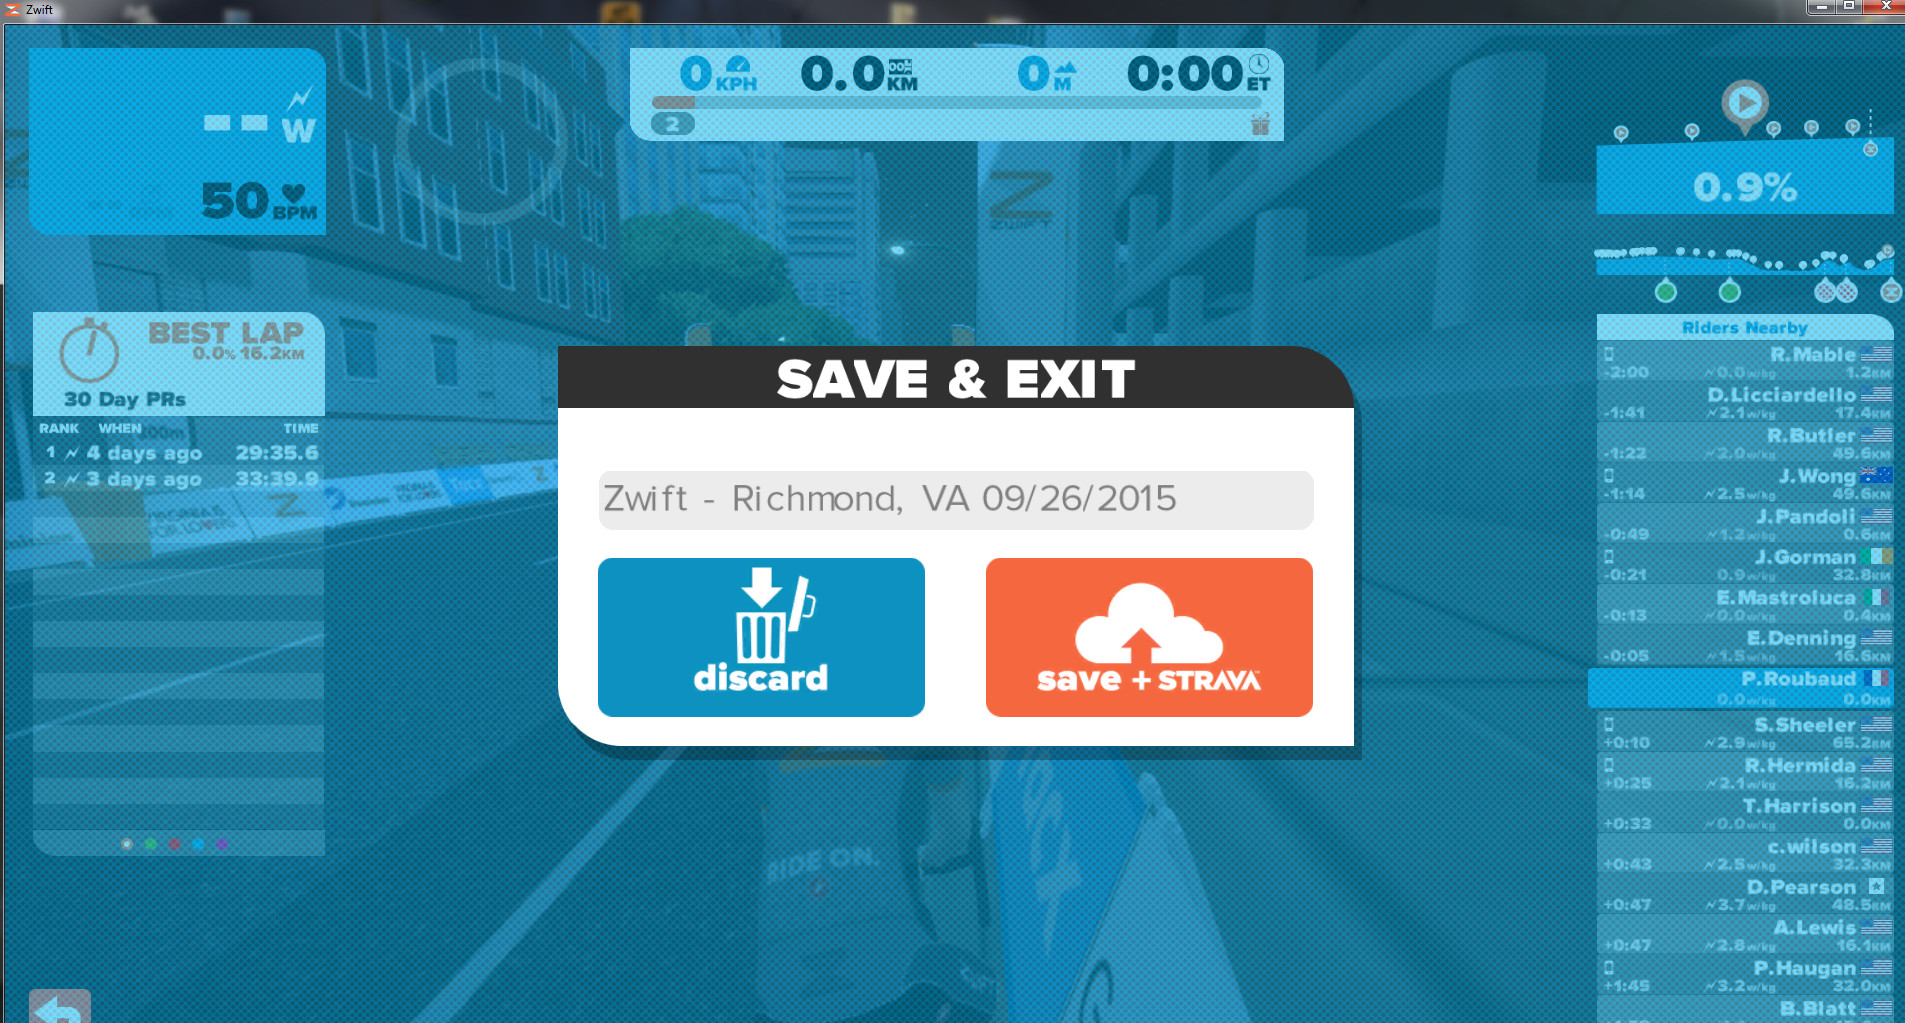 save_exit_zwift